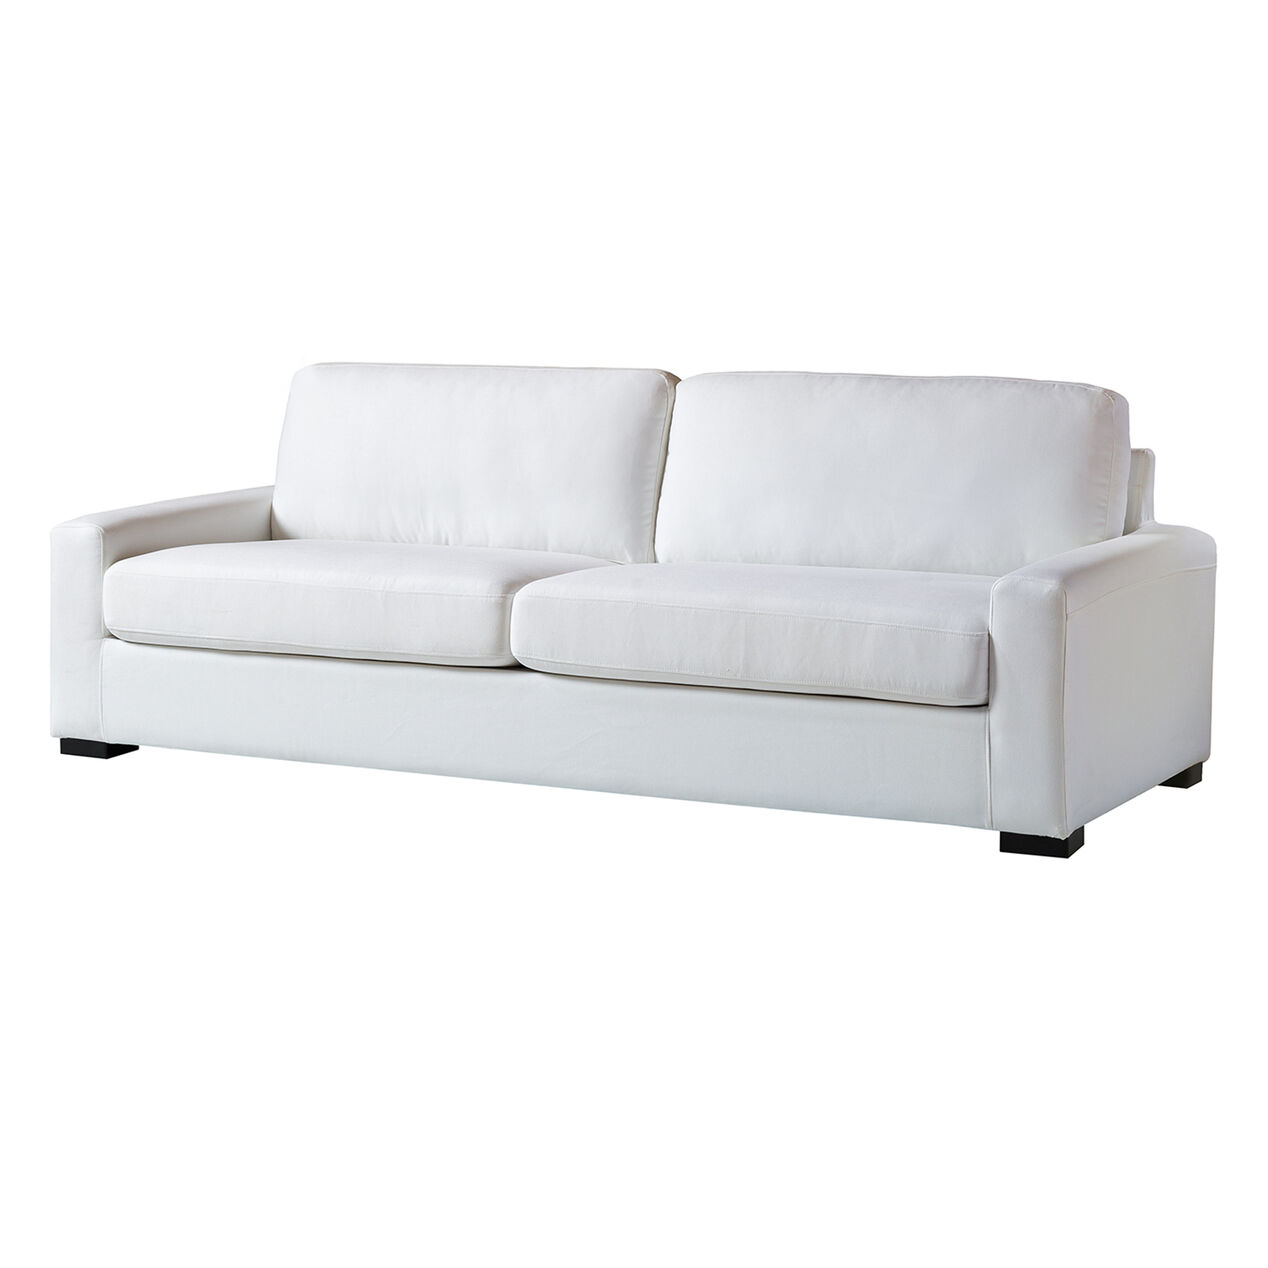 White Malone Slipcover Sofa At Home